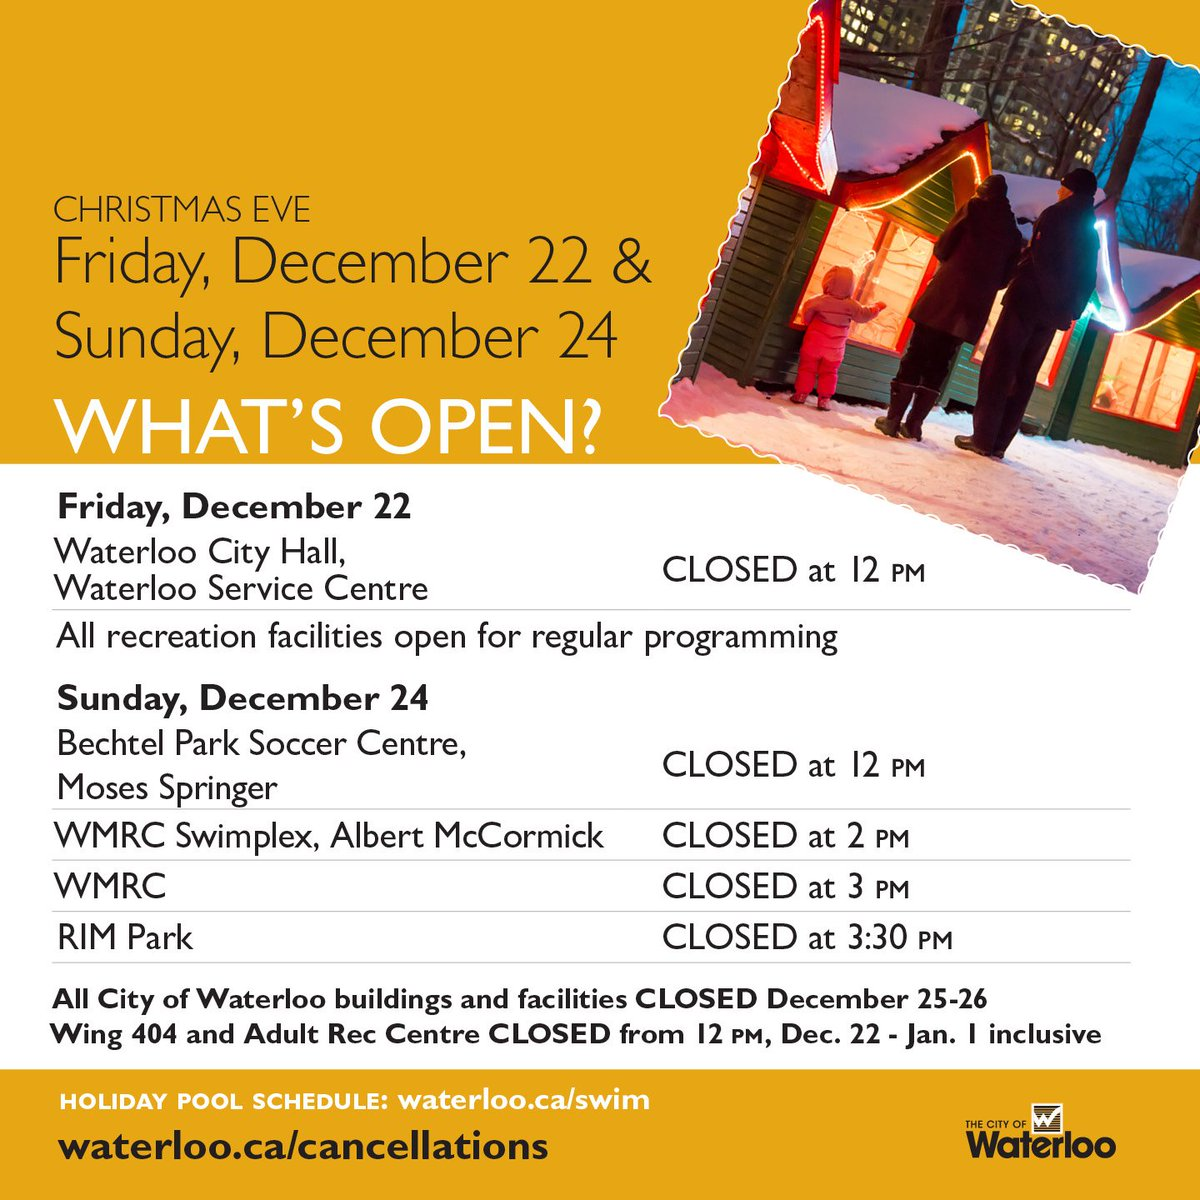 city of waterloo on twitter find out what is open on christmas eve and over the christmas holidays full details here httpstcodmj6xle60d - What Is Open On Christmas Eve